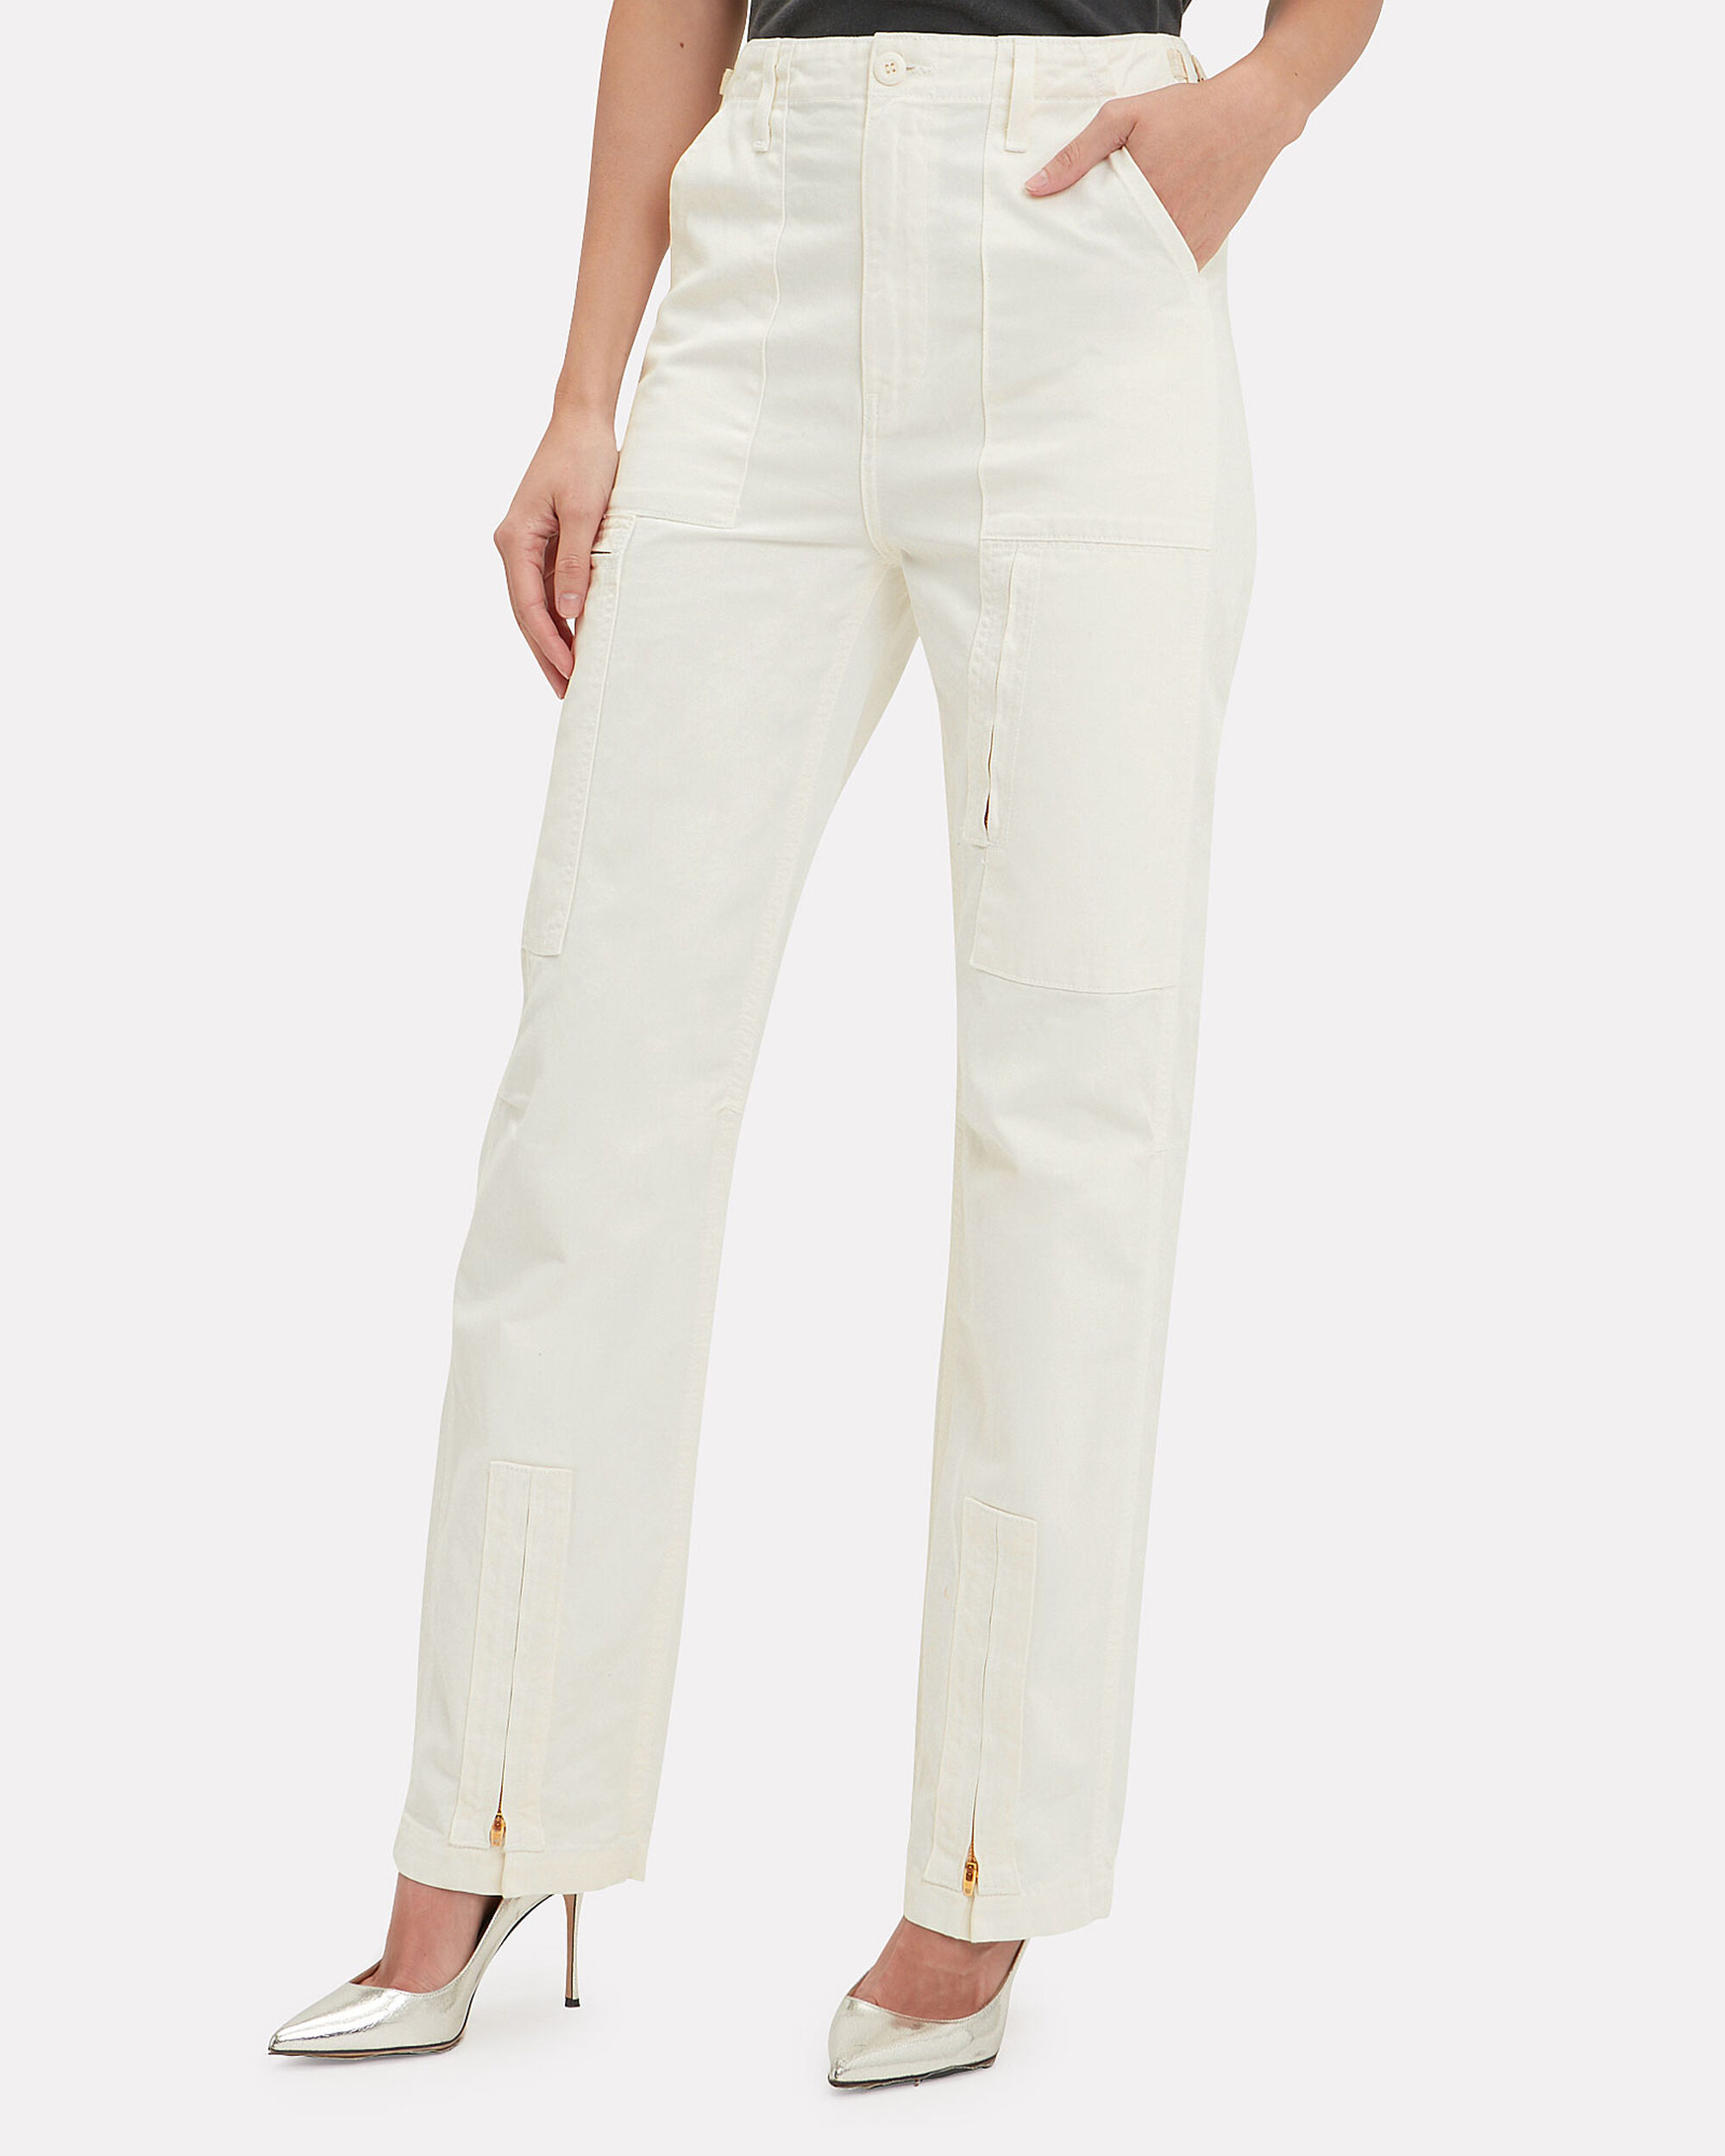 Dirty White Cargo Pants, OFF WHITE, hi-res